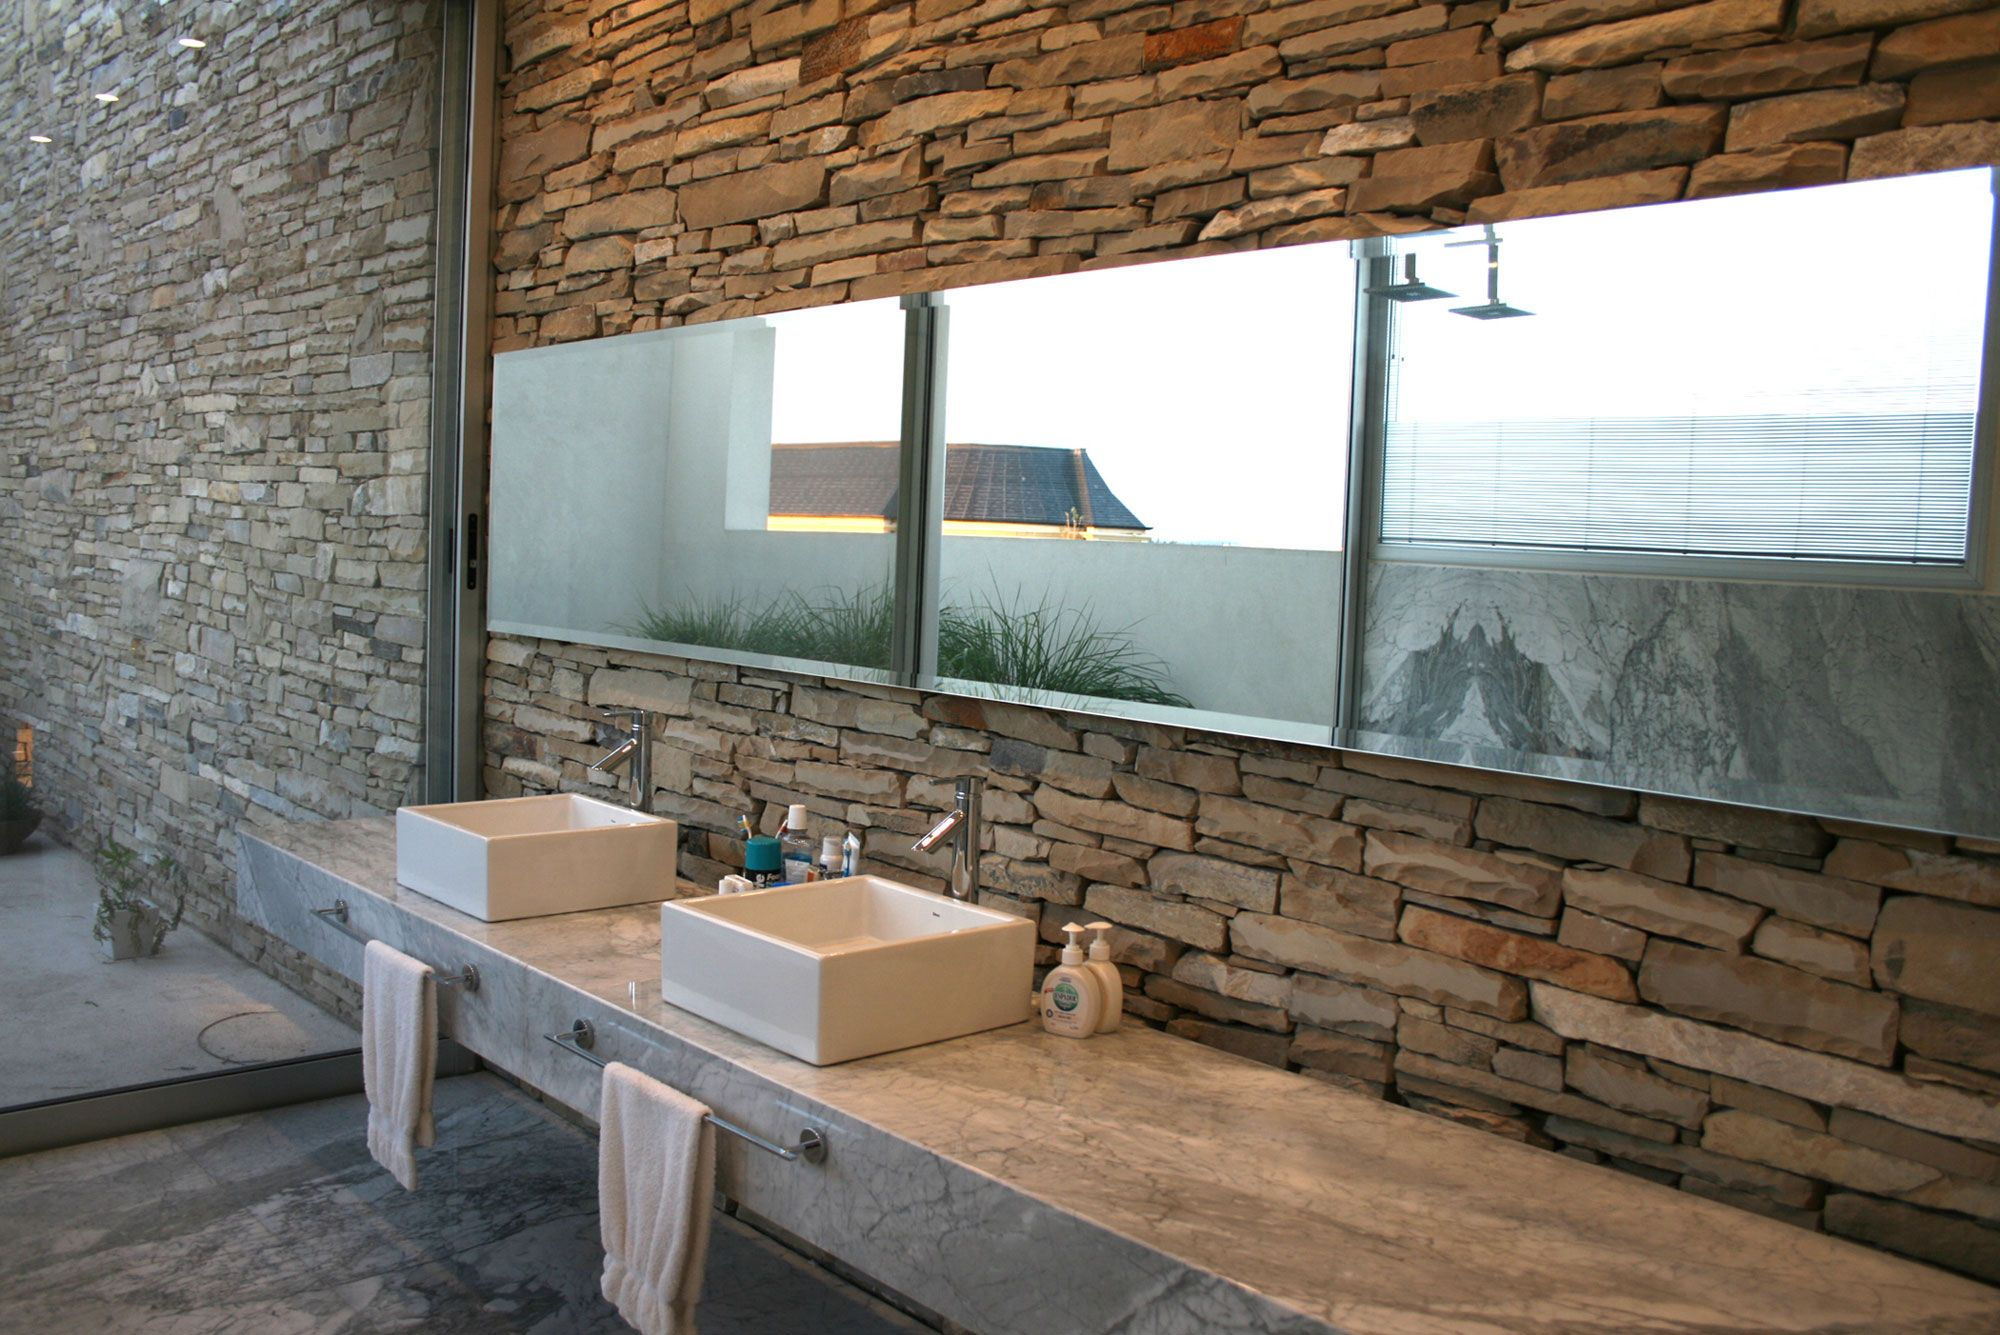 Simple Rustic Bathroom Designs stone bathroom concepts | awesome rustic modern bathroom designs